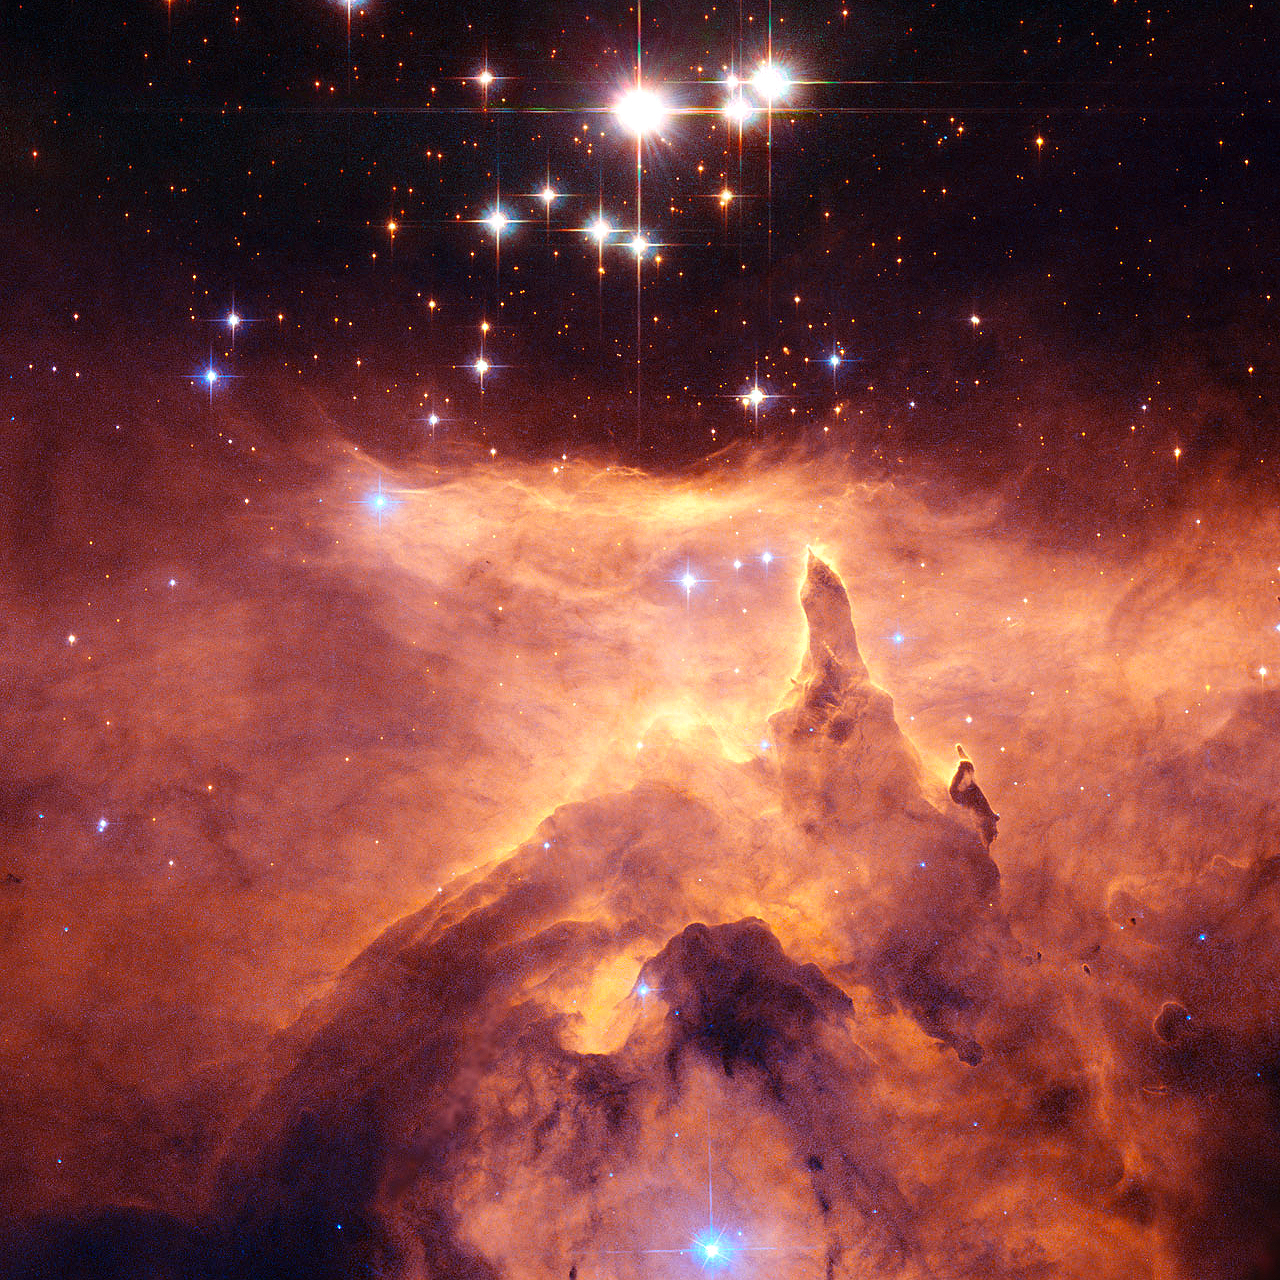 hubble telescope pictures of two suns - photo #32